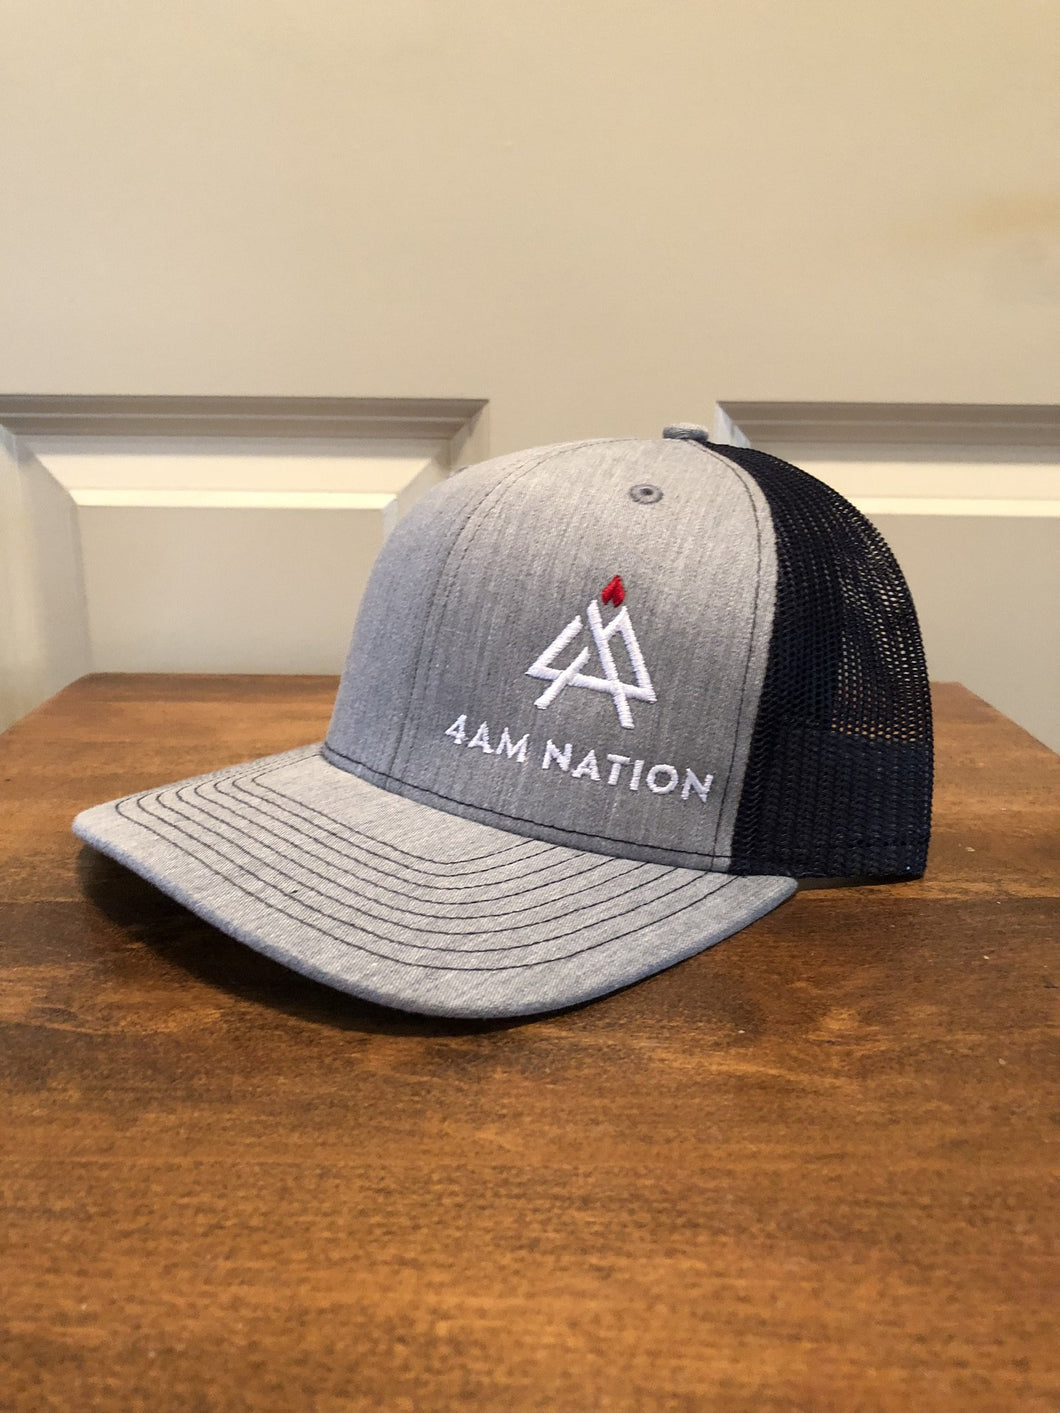 HEATHER GREY AND NAVY - WHITE LOGO RED TIP